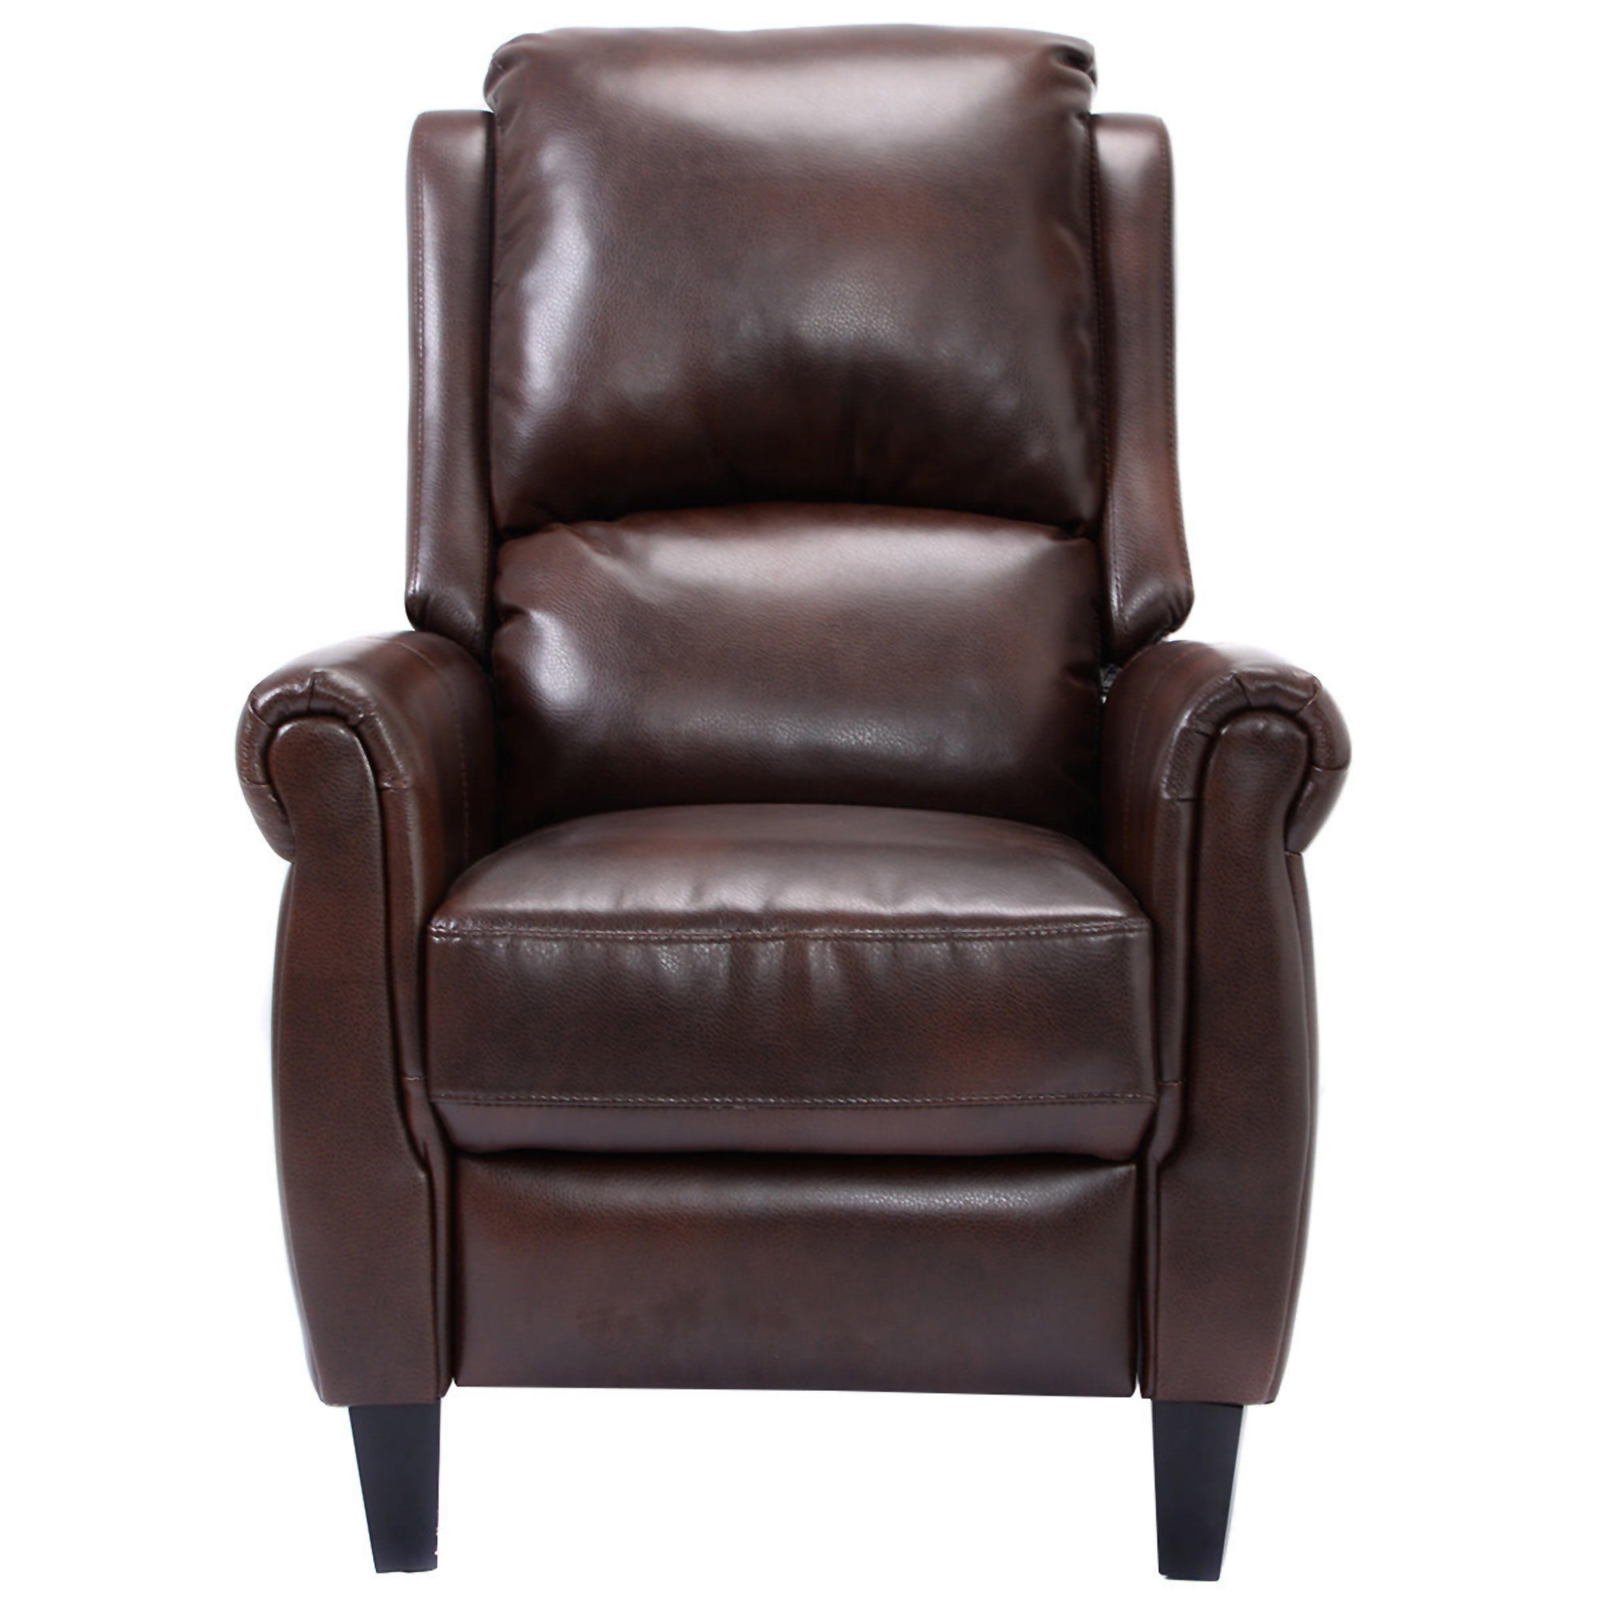 Goplus Leather Push Back Leather Recliner Chair  Sears